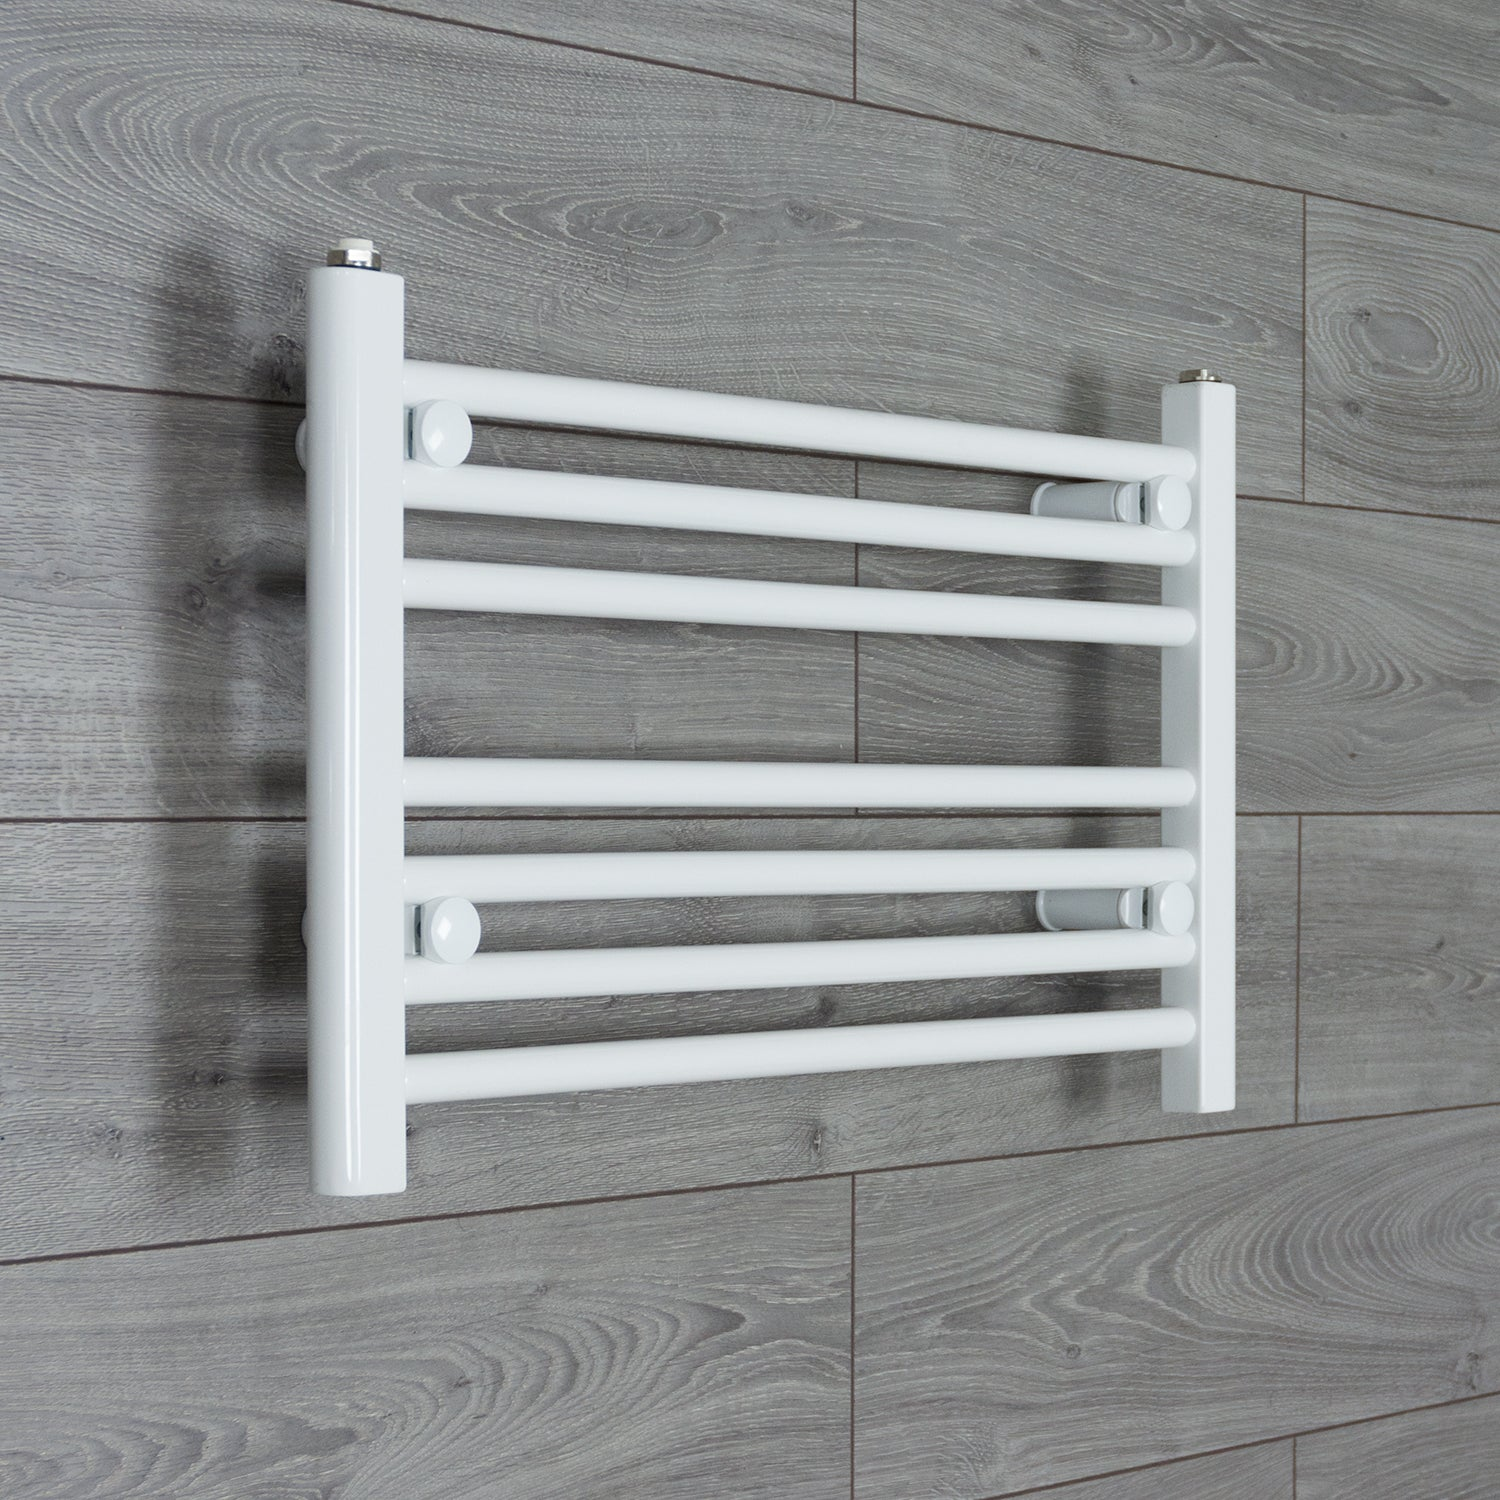 650mm Wide 400mm High White Towel Rail Radiator